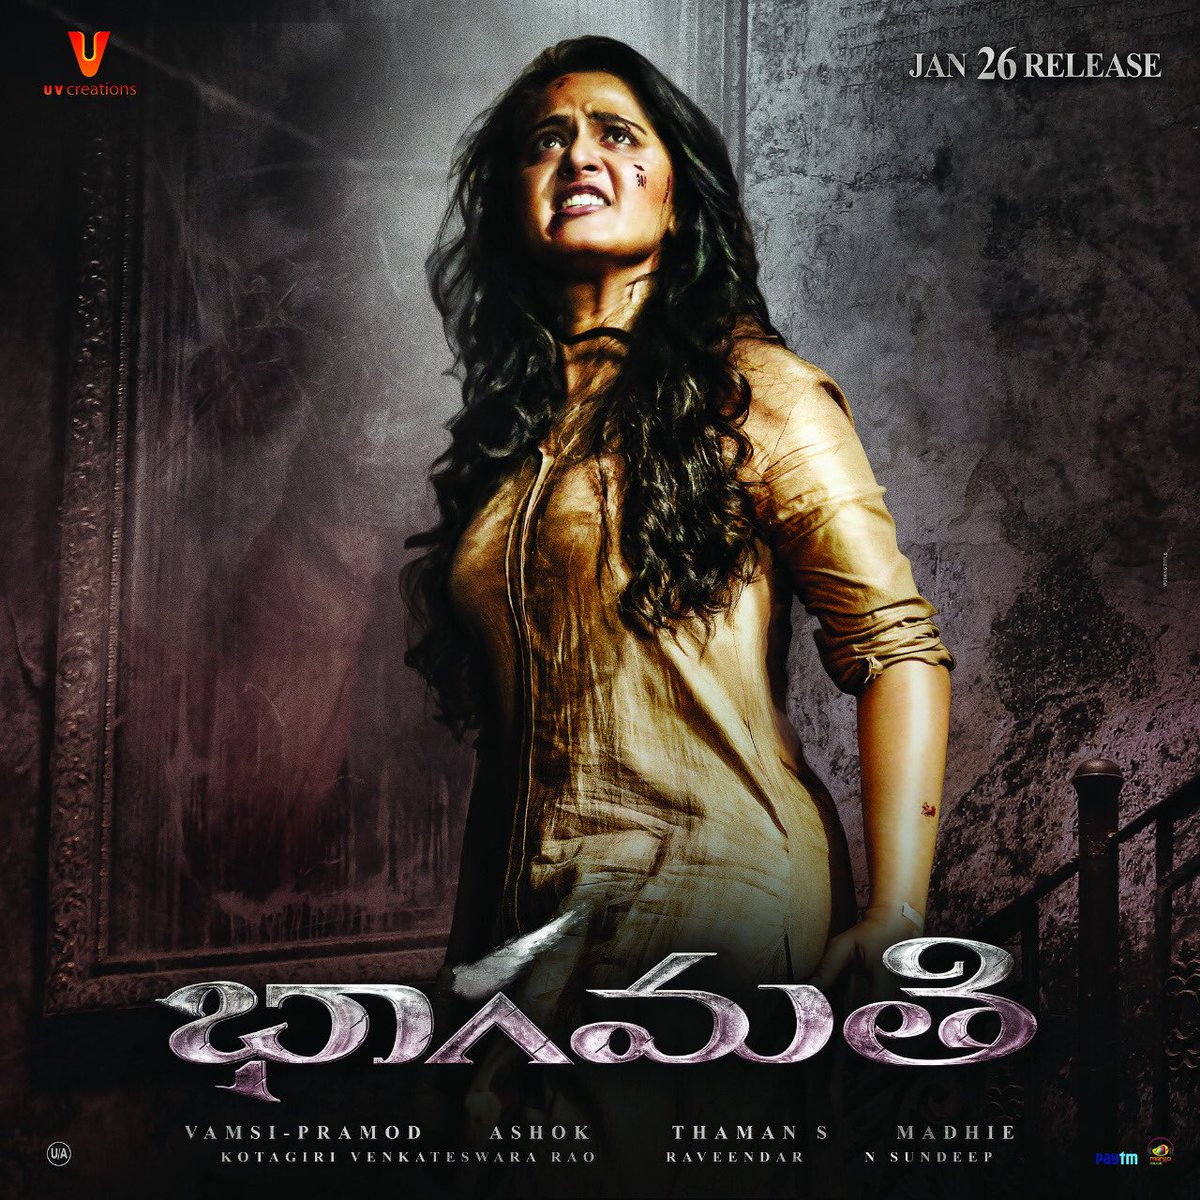 #Bhaagamathie (UA 142) From This Republic Day WW! https://t.co/zPNSKbZCiC …  #BhaagamathieFromJan26 https://t.co/snZQn5BlIE